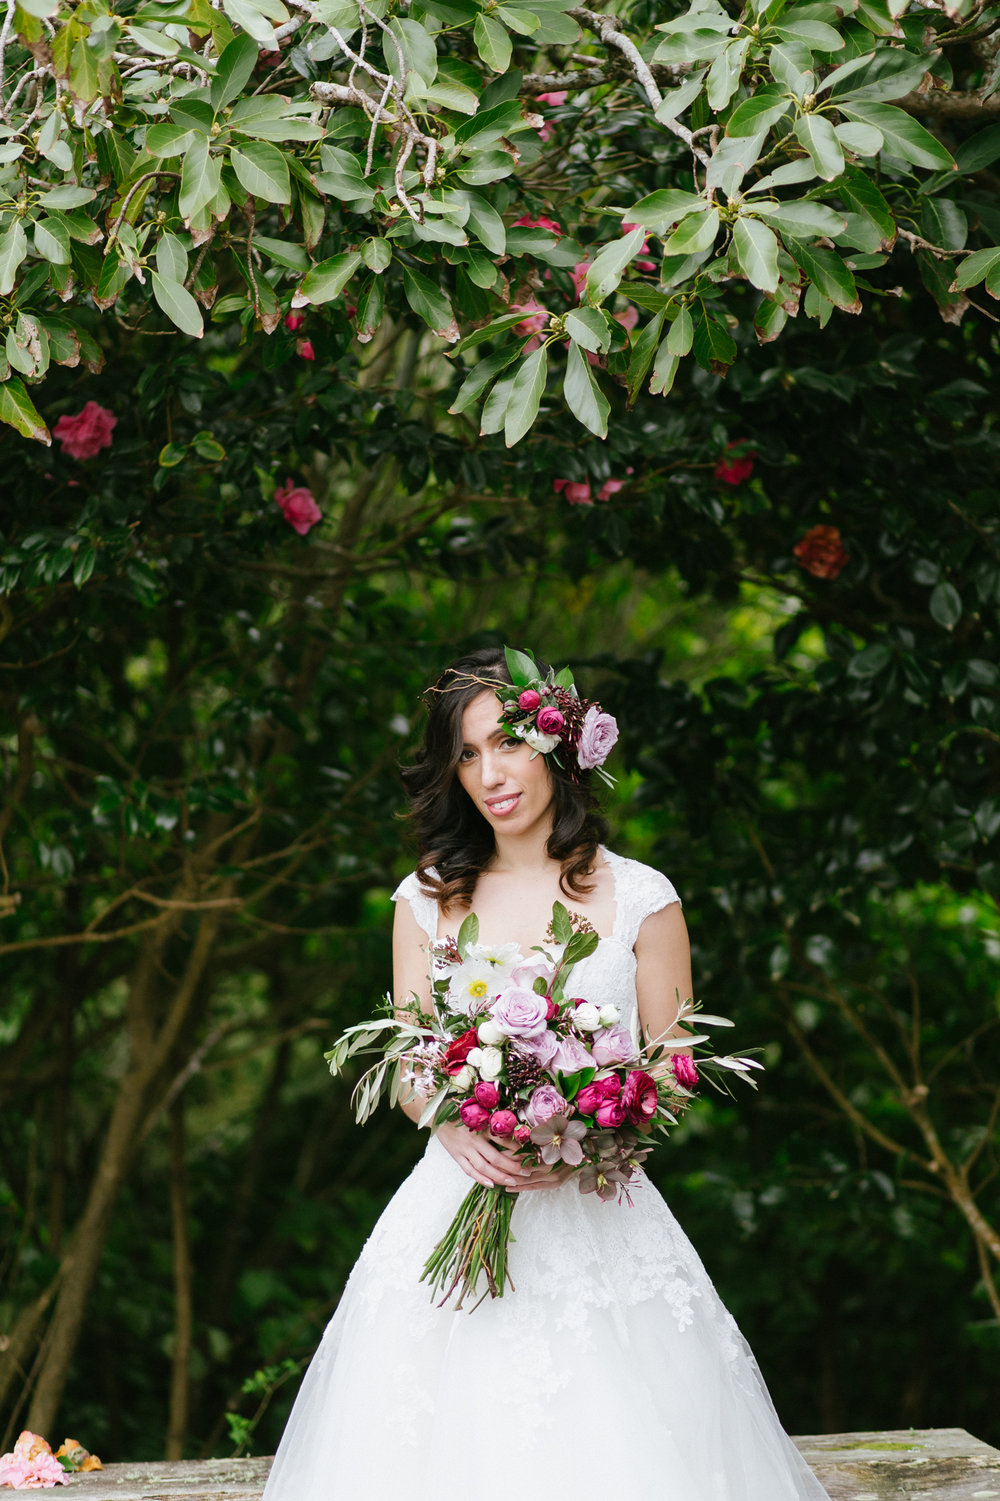 Purple Bouquet Bride Flower Crown Photoshoot Geometric NZ Wedding Rose Ranunculas Wedding Florist Floral Designer Stylist Woodroyd Estate Berries Garden